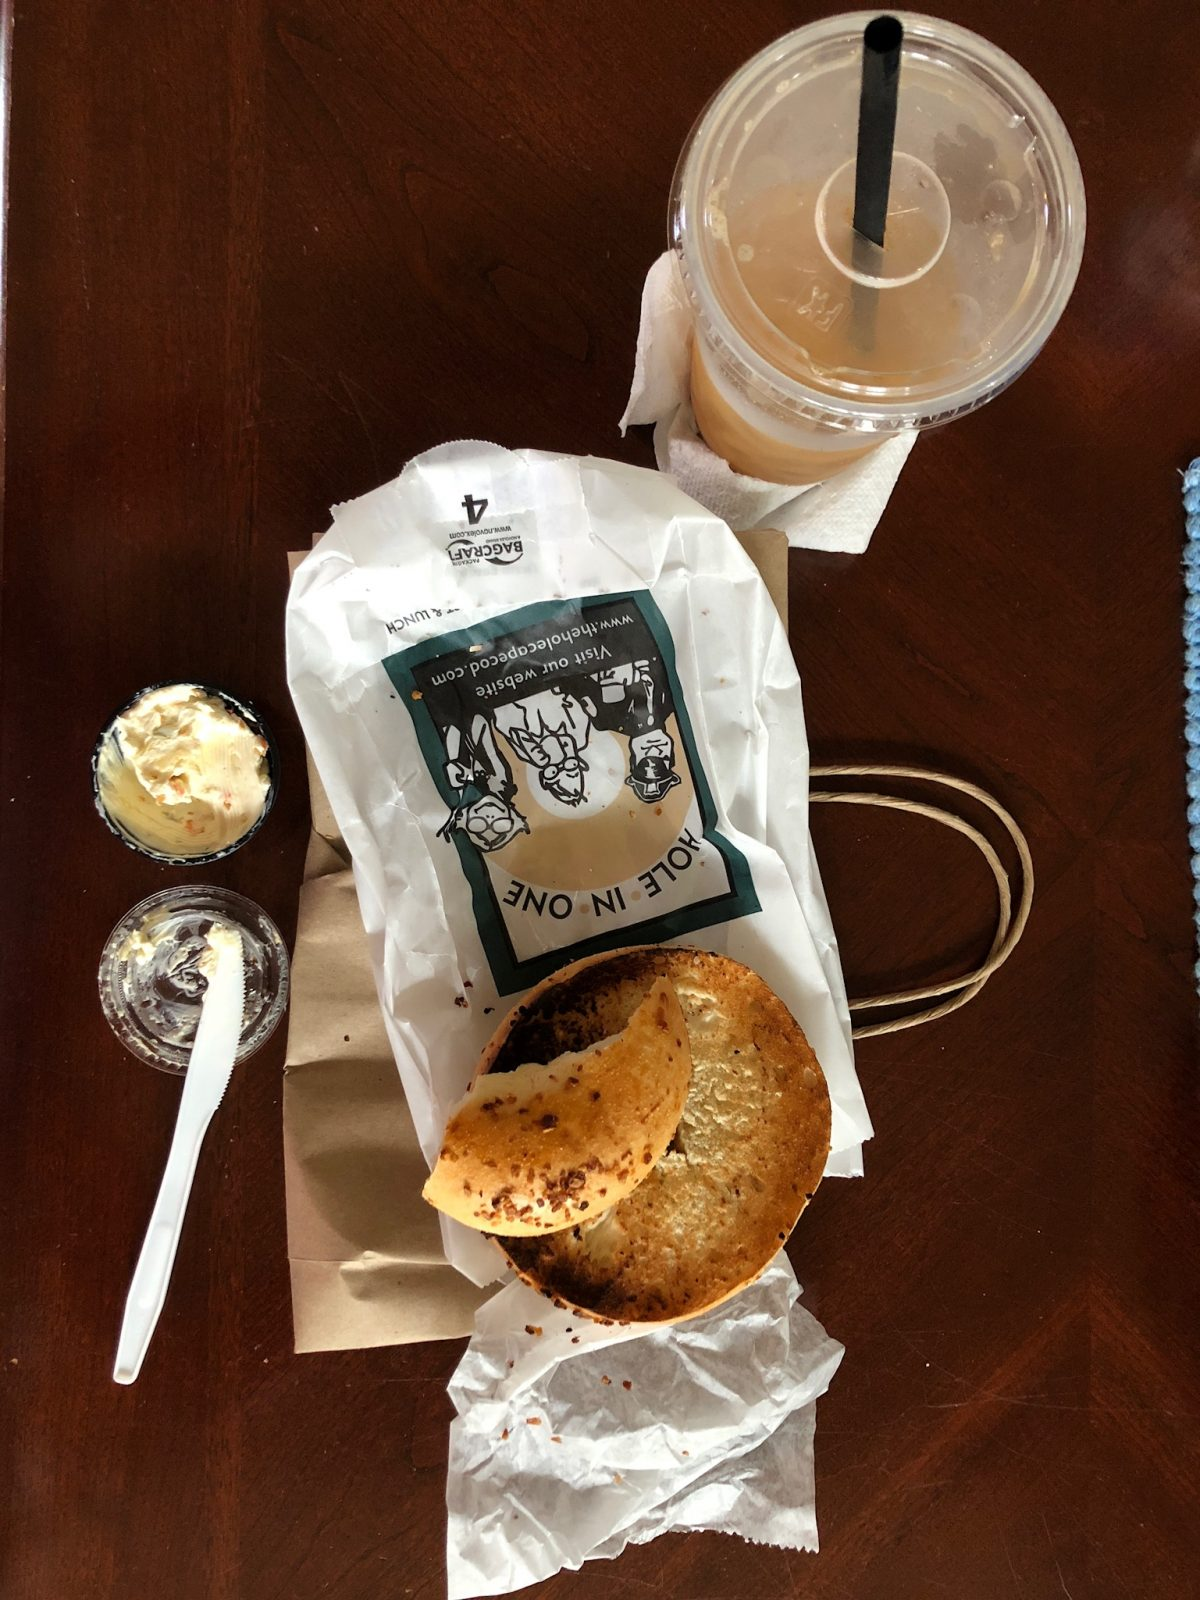 The Best Bagels in Cape Cod at Hole in One in Eastham